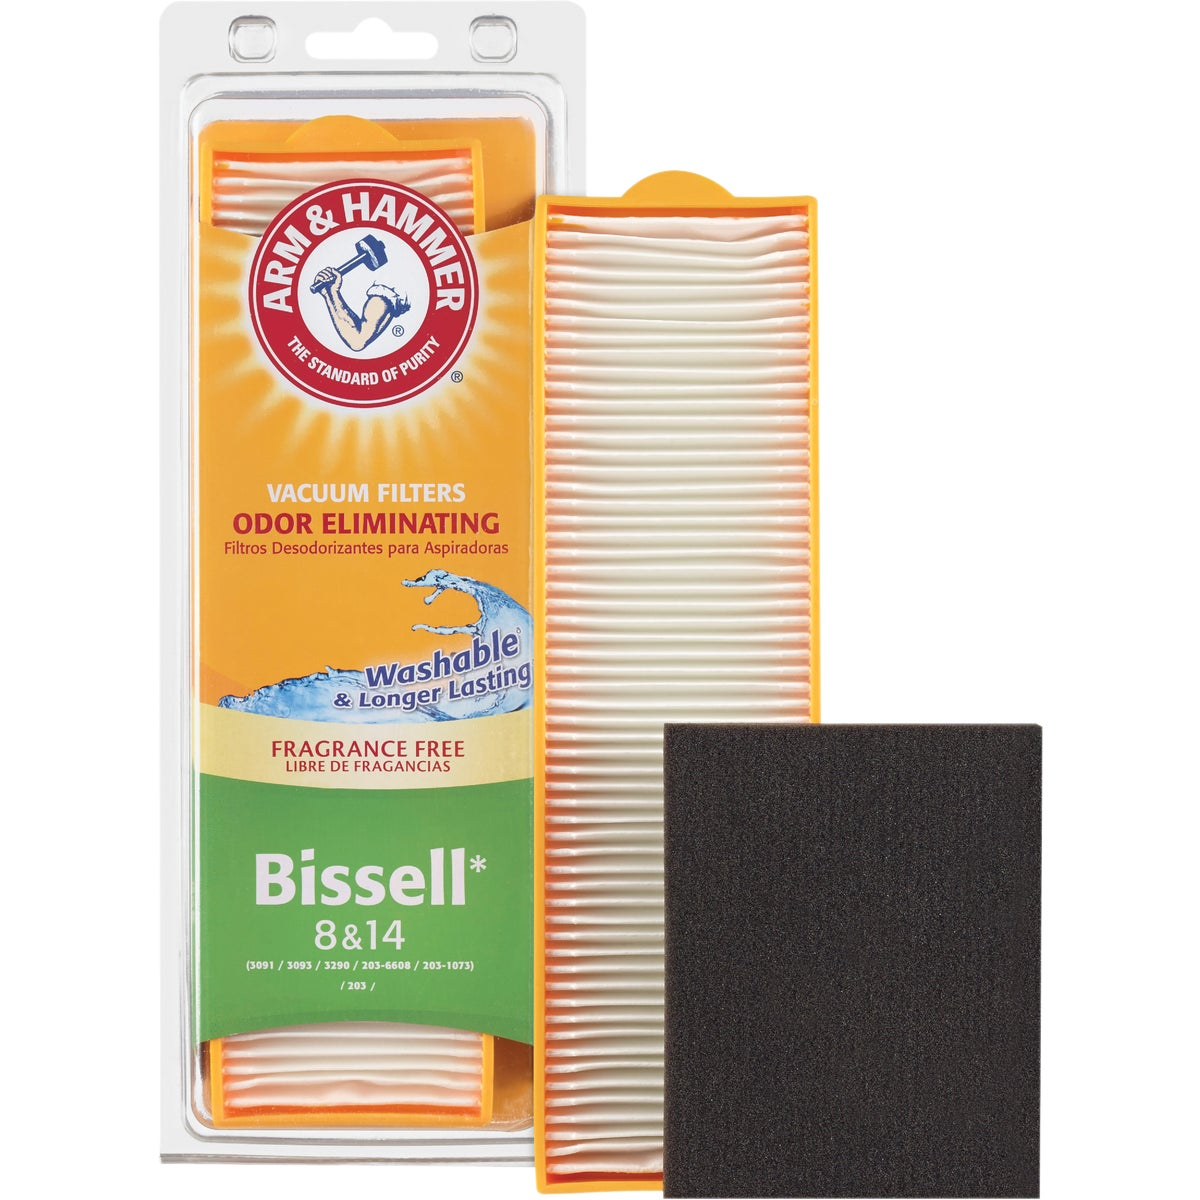 BISSELL VACUUM FILTER - 66808A-4 by Electrolux Home Care